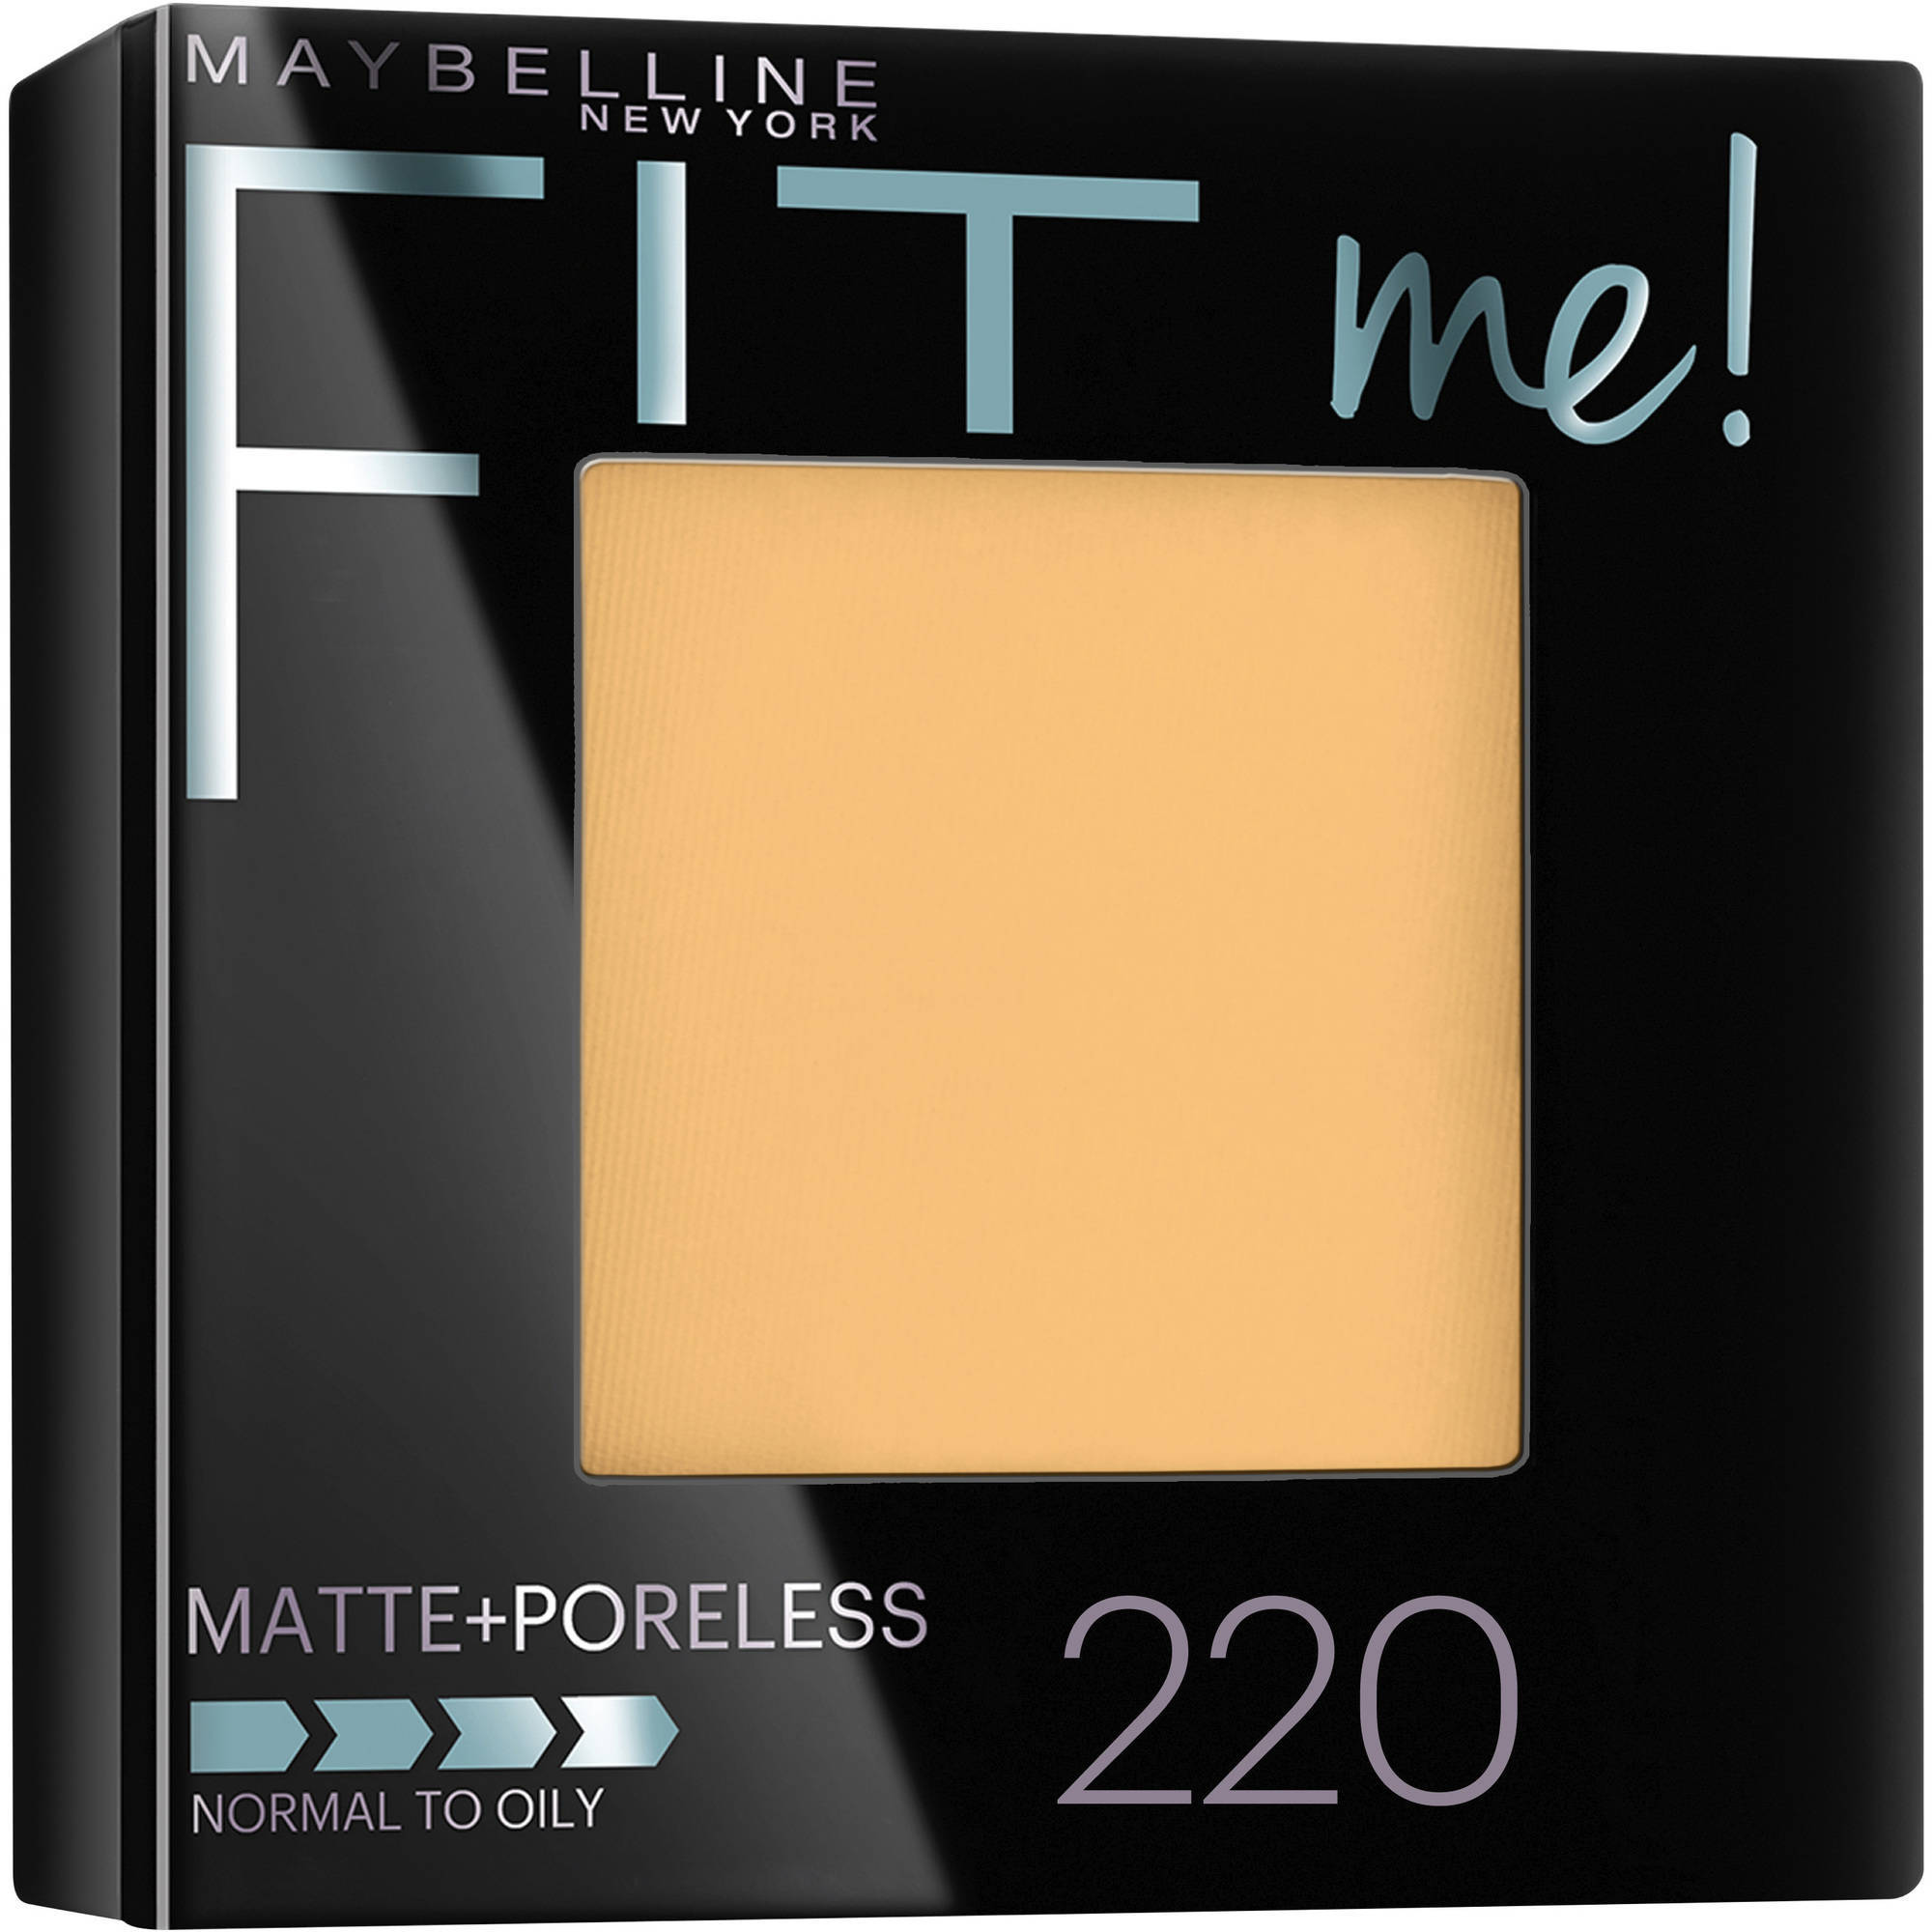 Maybelline Fit Me! Matte + Poreless Pressed Powder